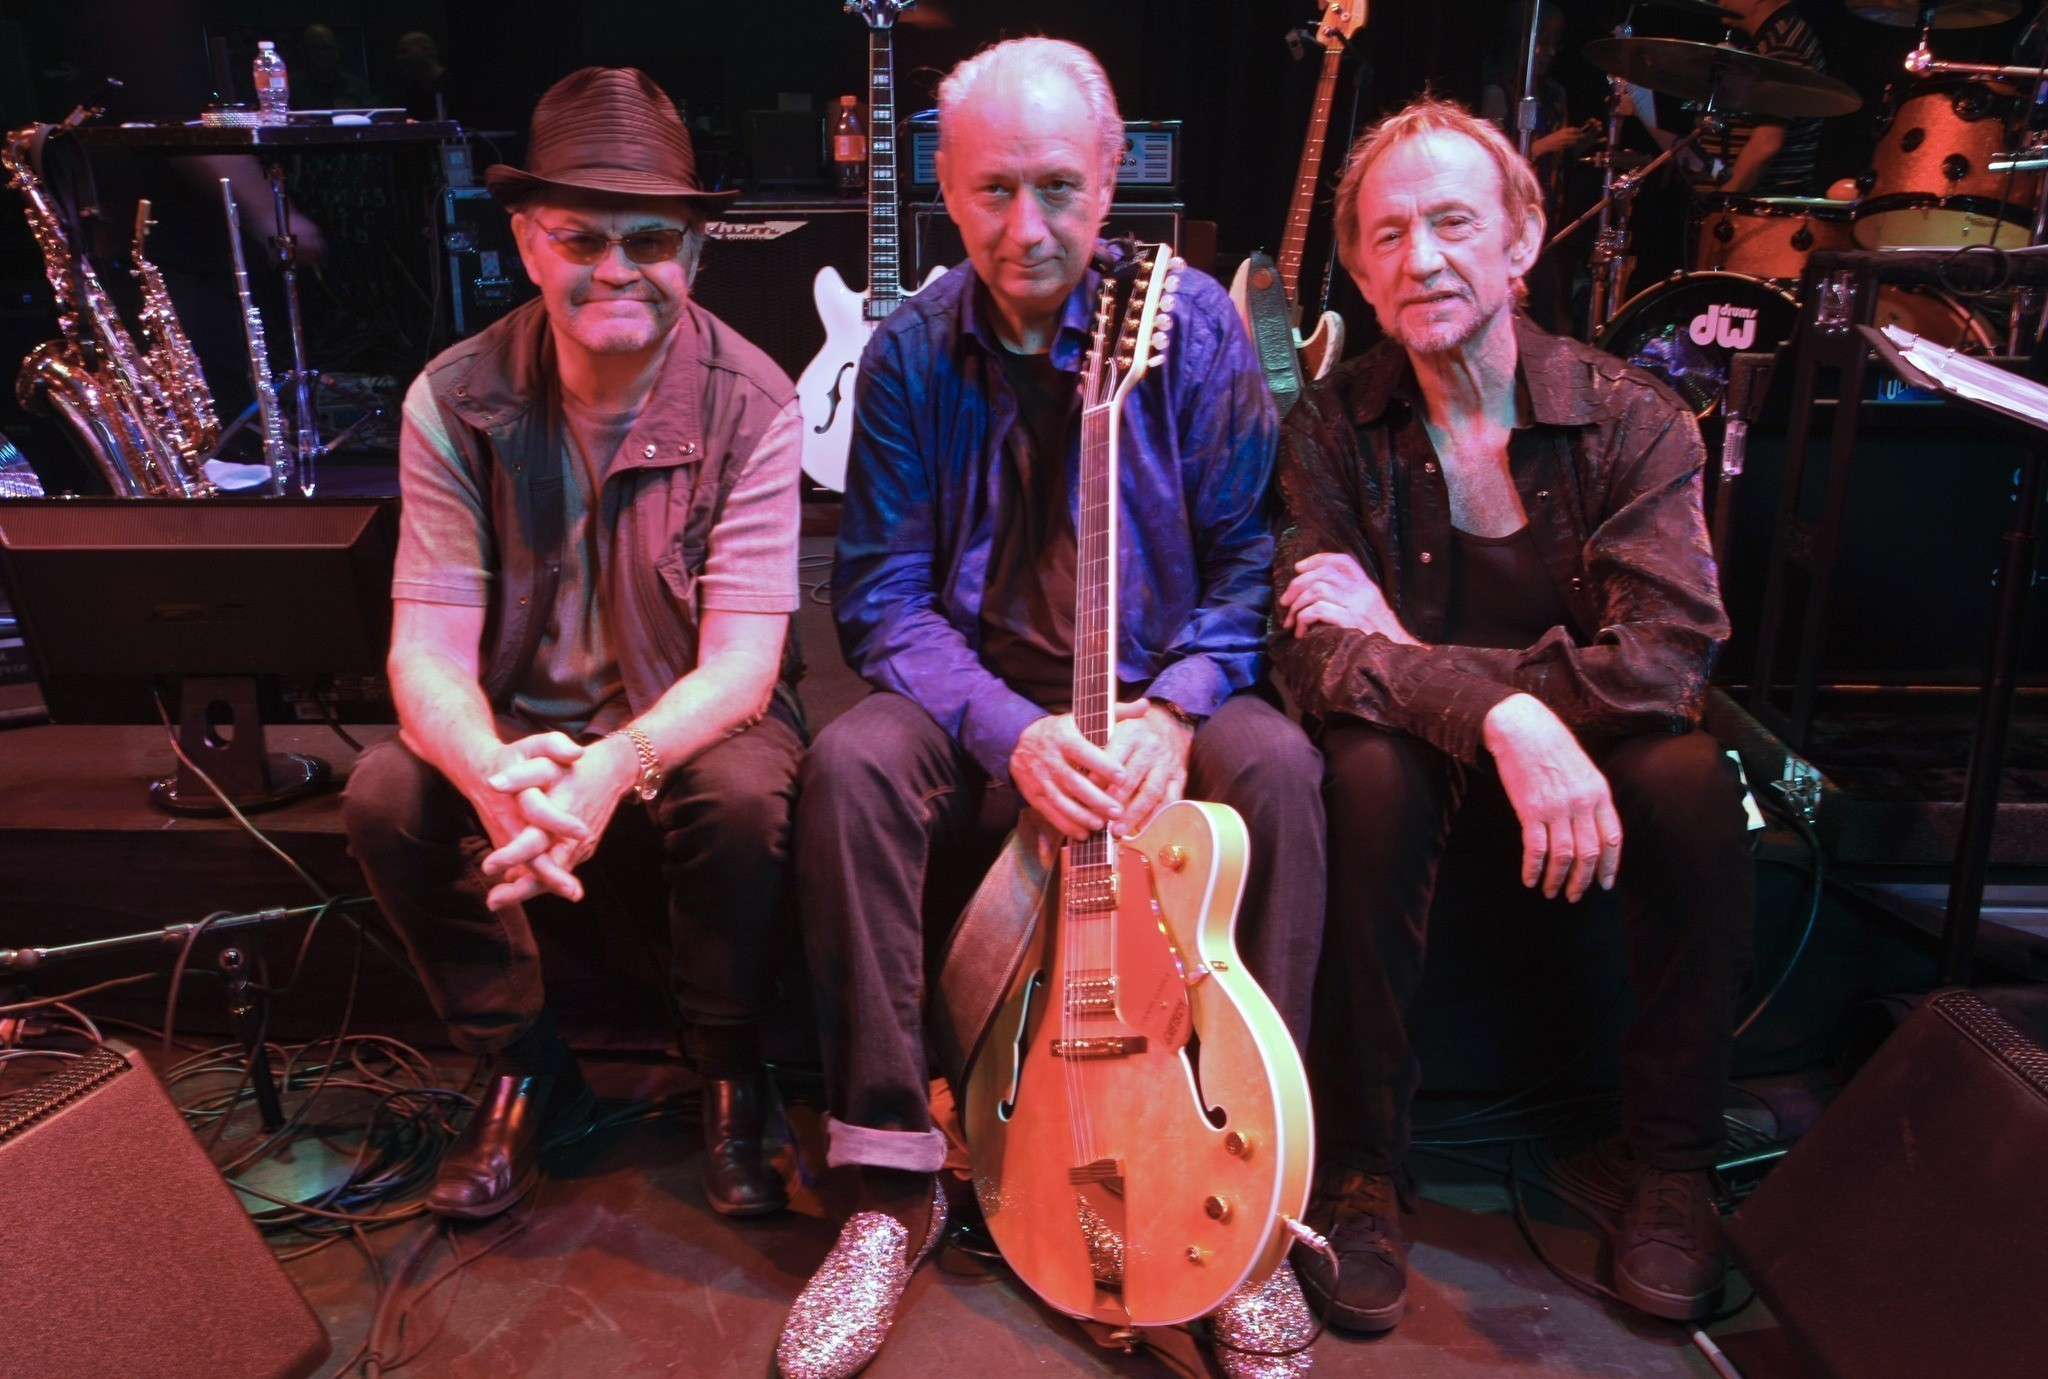 mike nesmith to join the monkees 50th anniversary tour for just one show friday in monterey